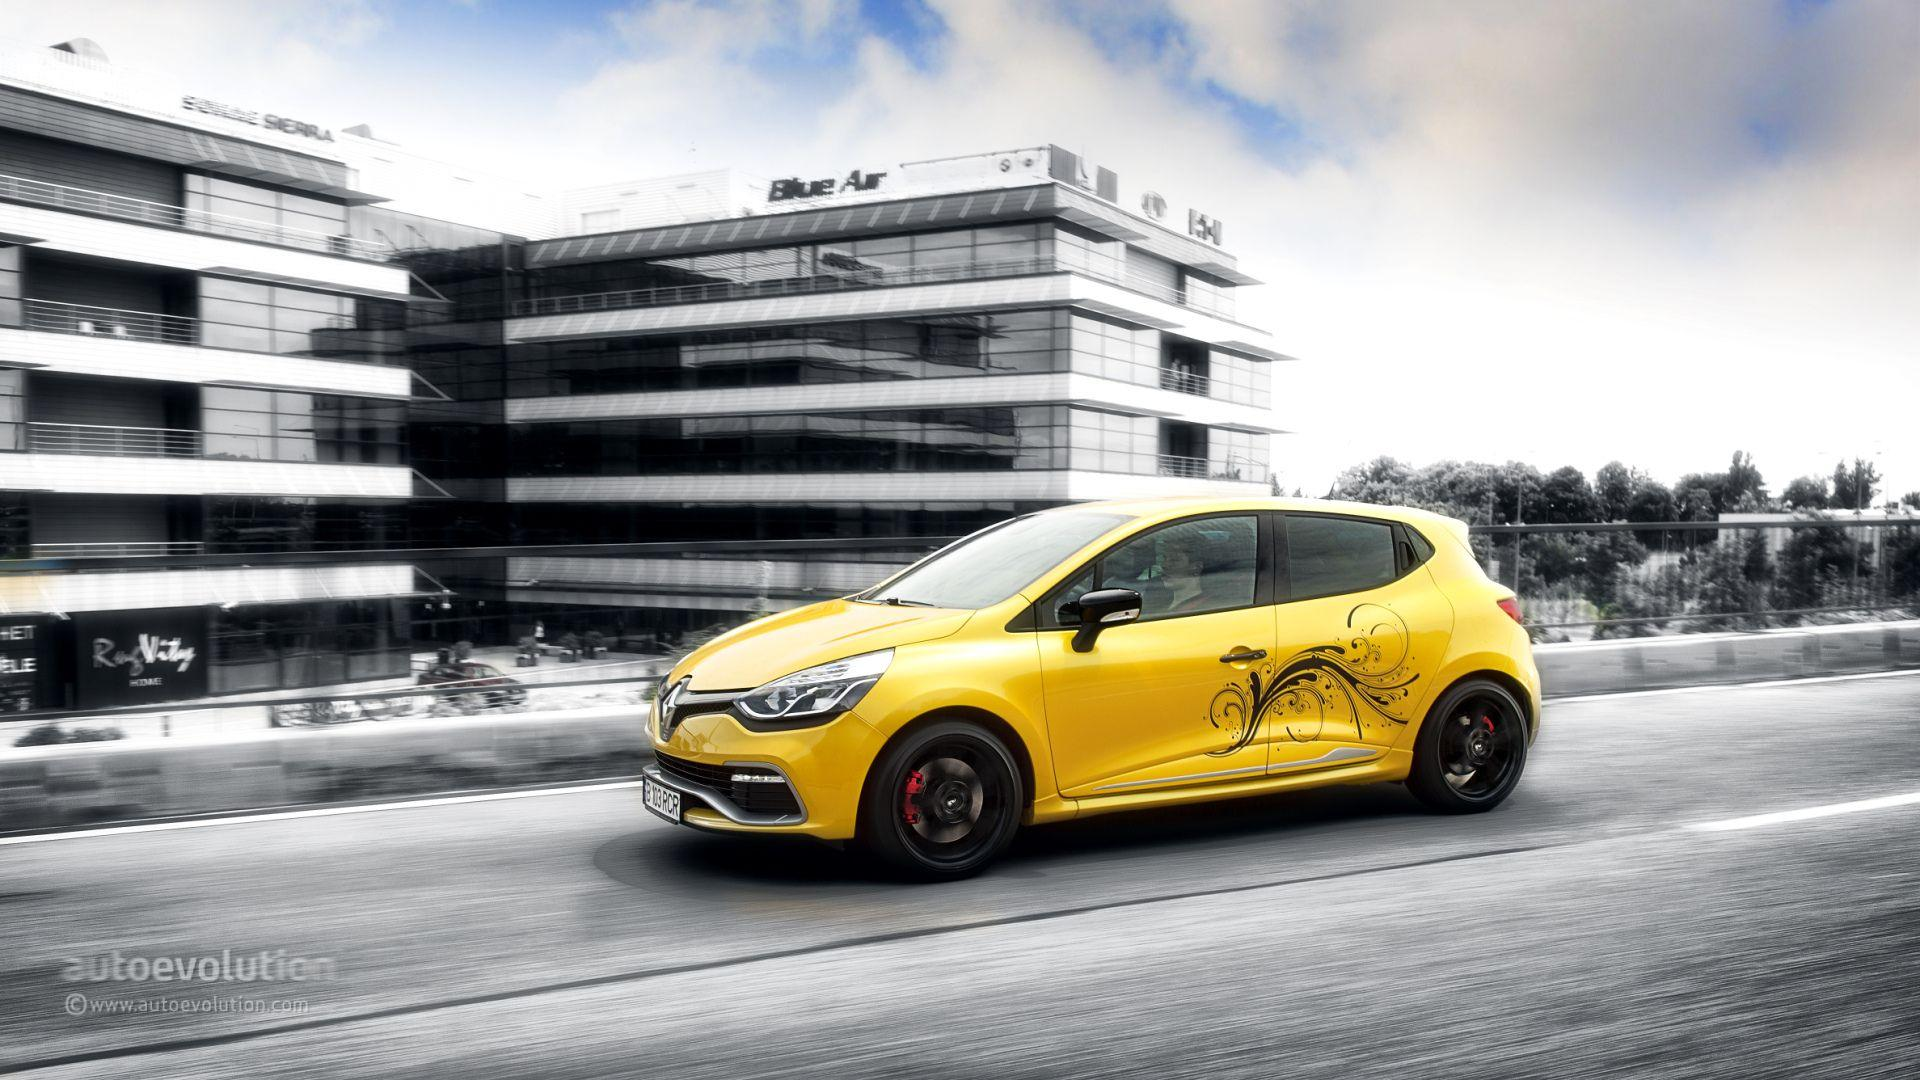 Renault Megane Wallpapers